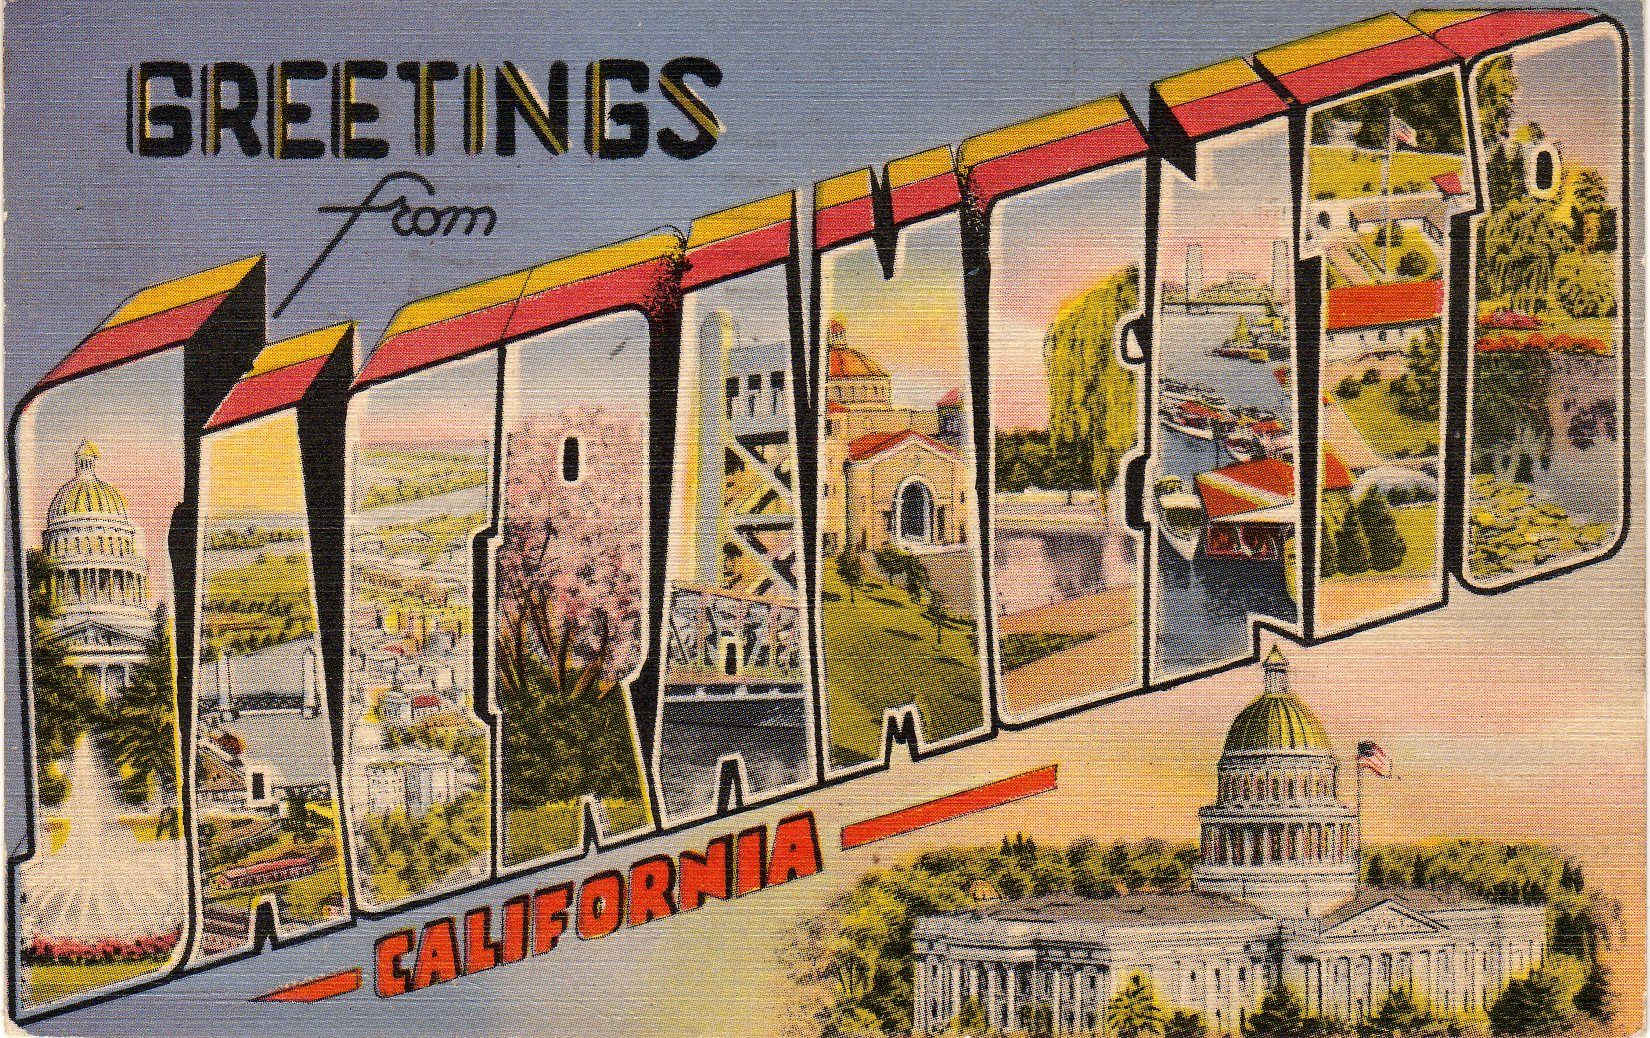 Greetings from sacramento one of my favorites